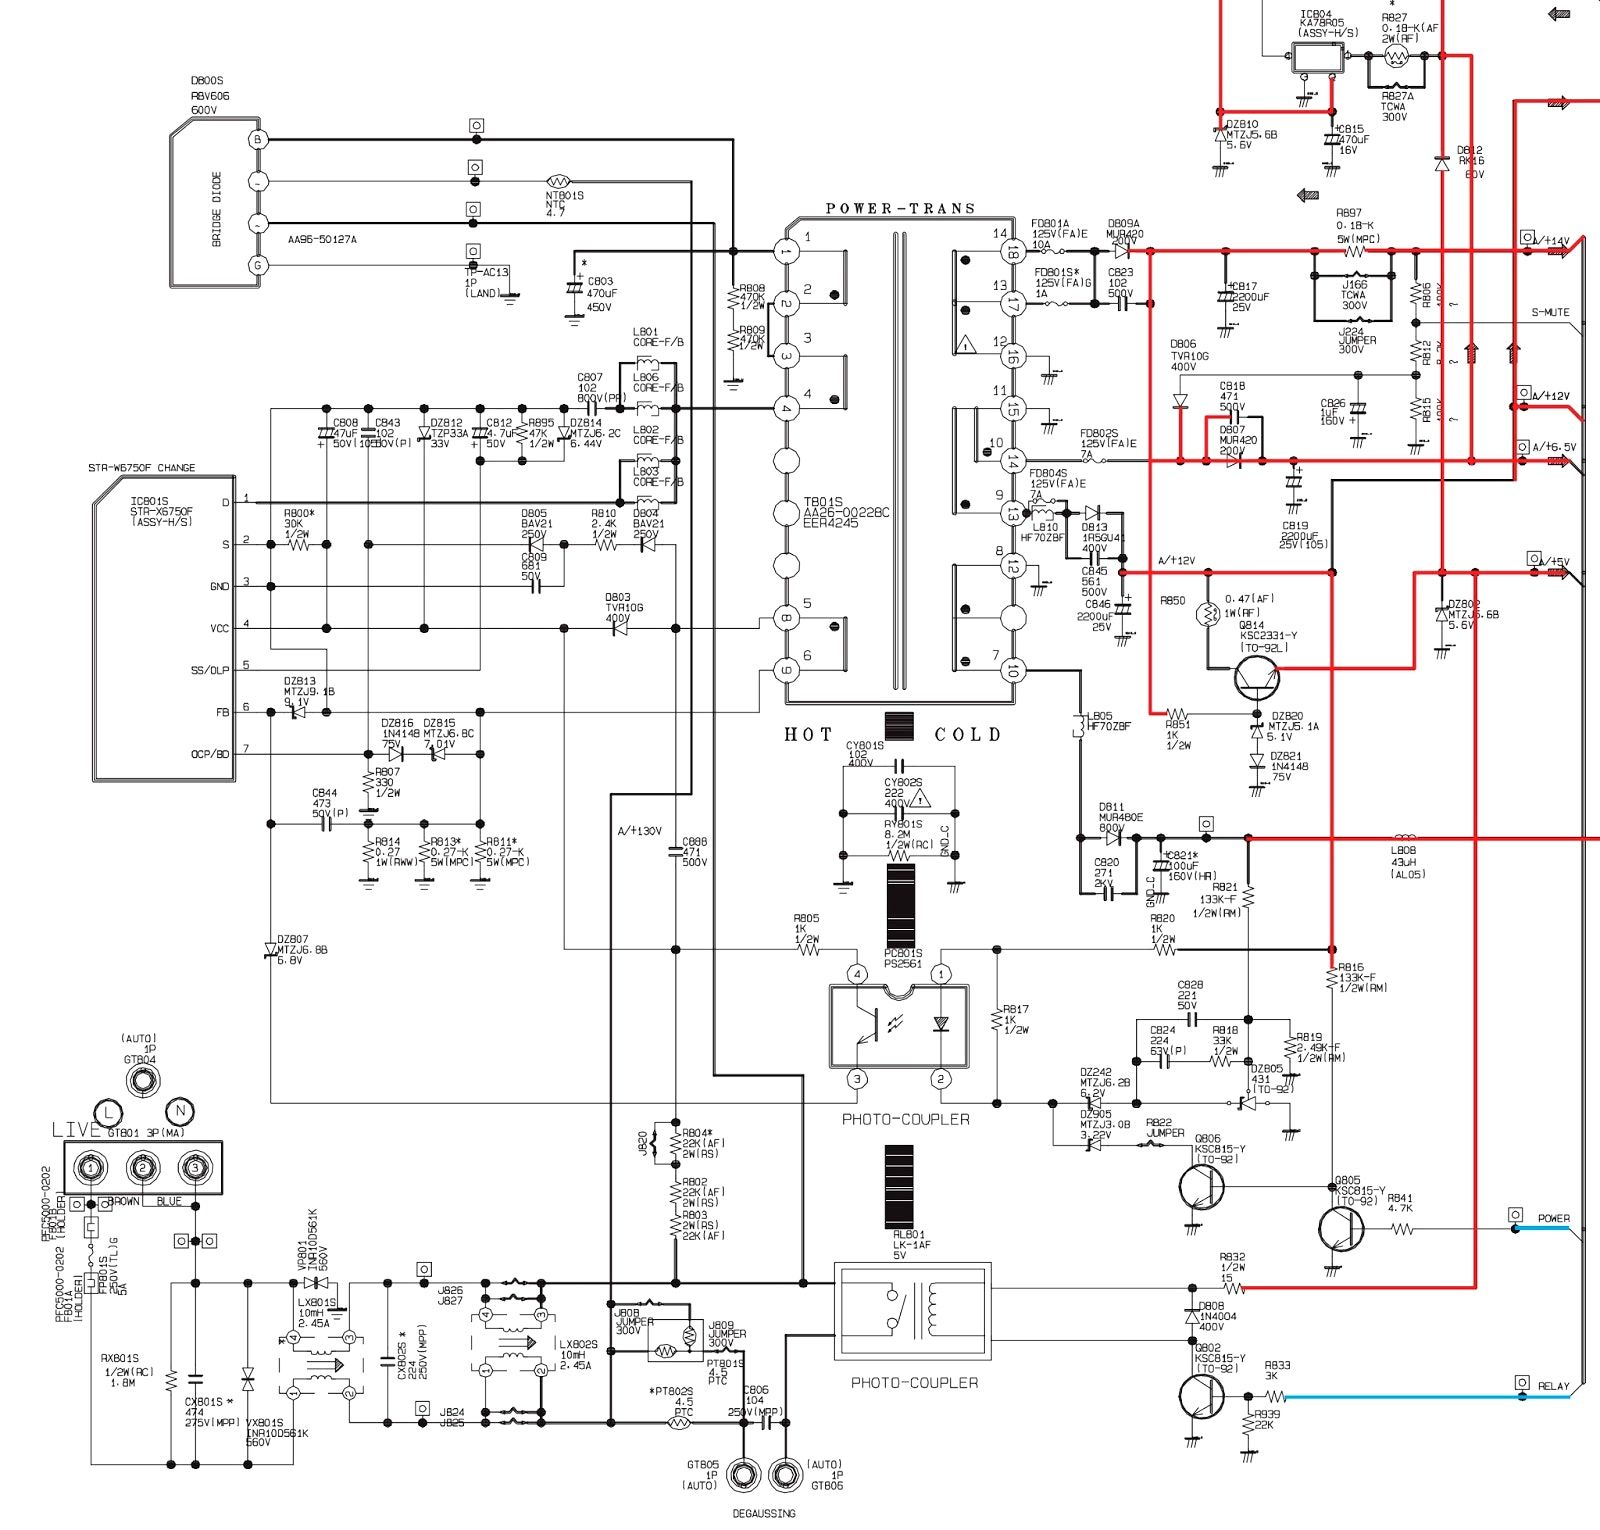 hight resolution of samsung led tv wiring schematic wiring diagrams the samsung usb wiring diagram led tv circuit diagram